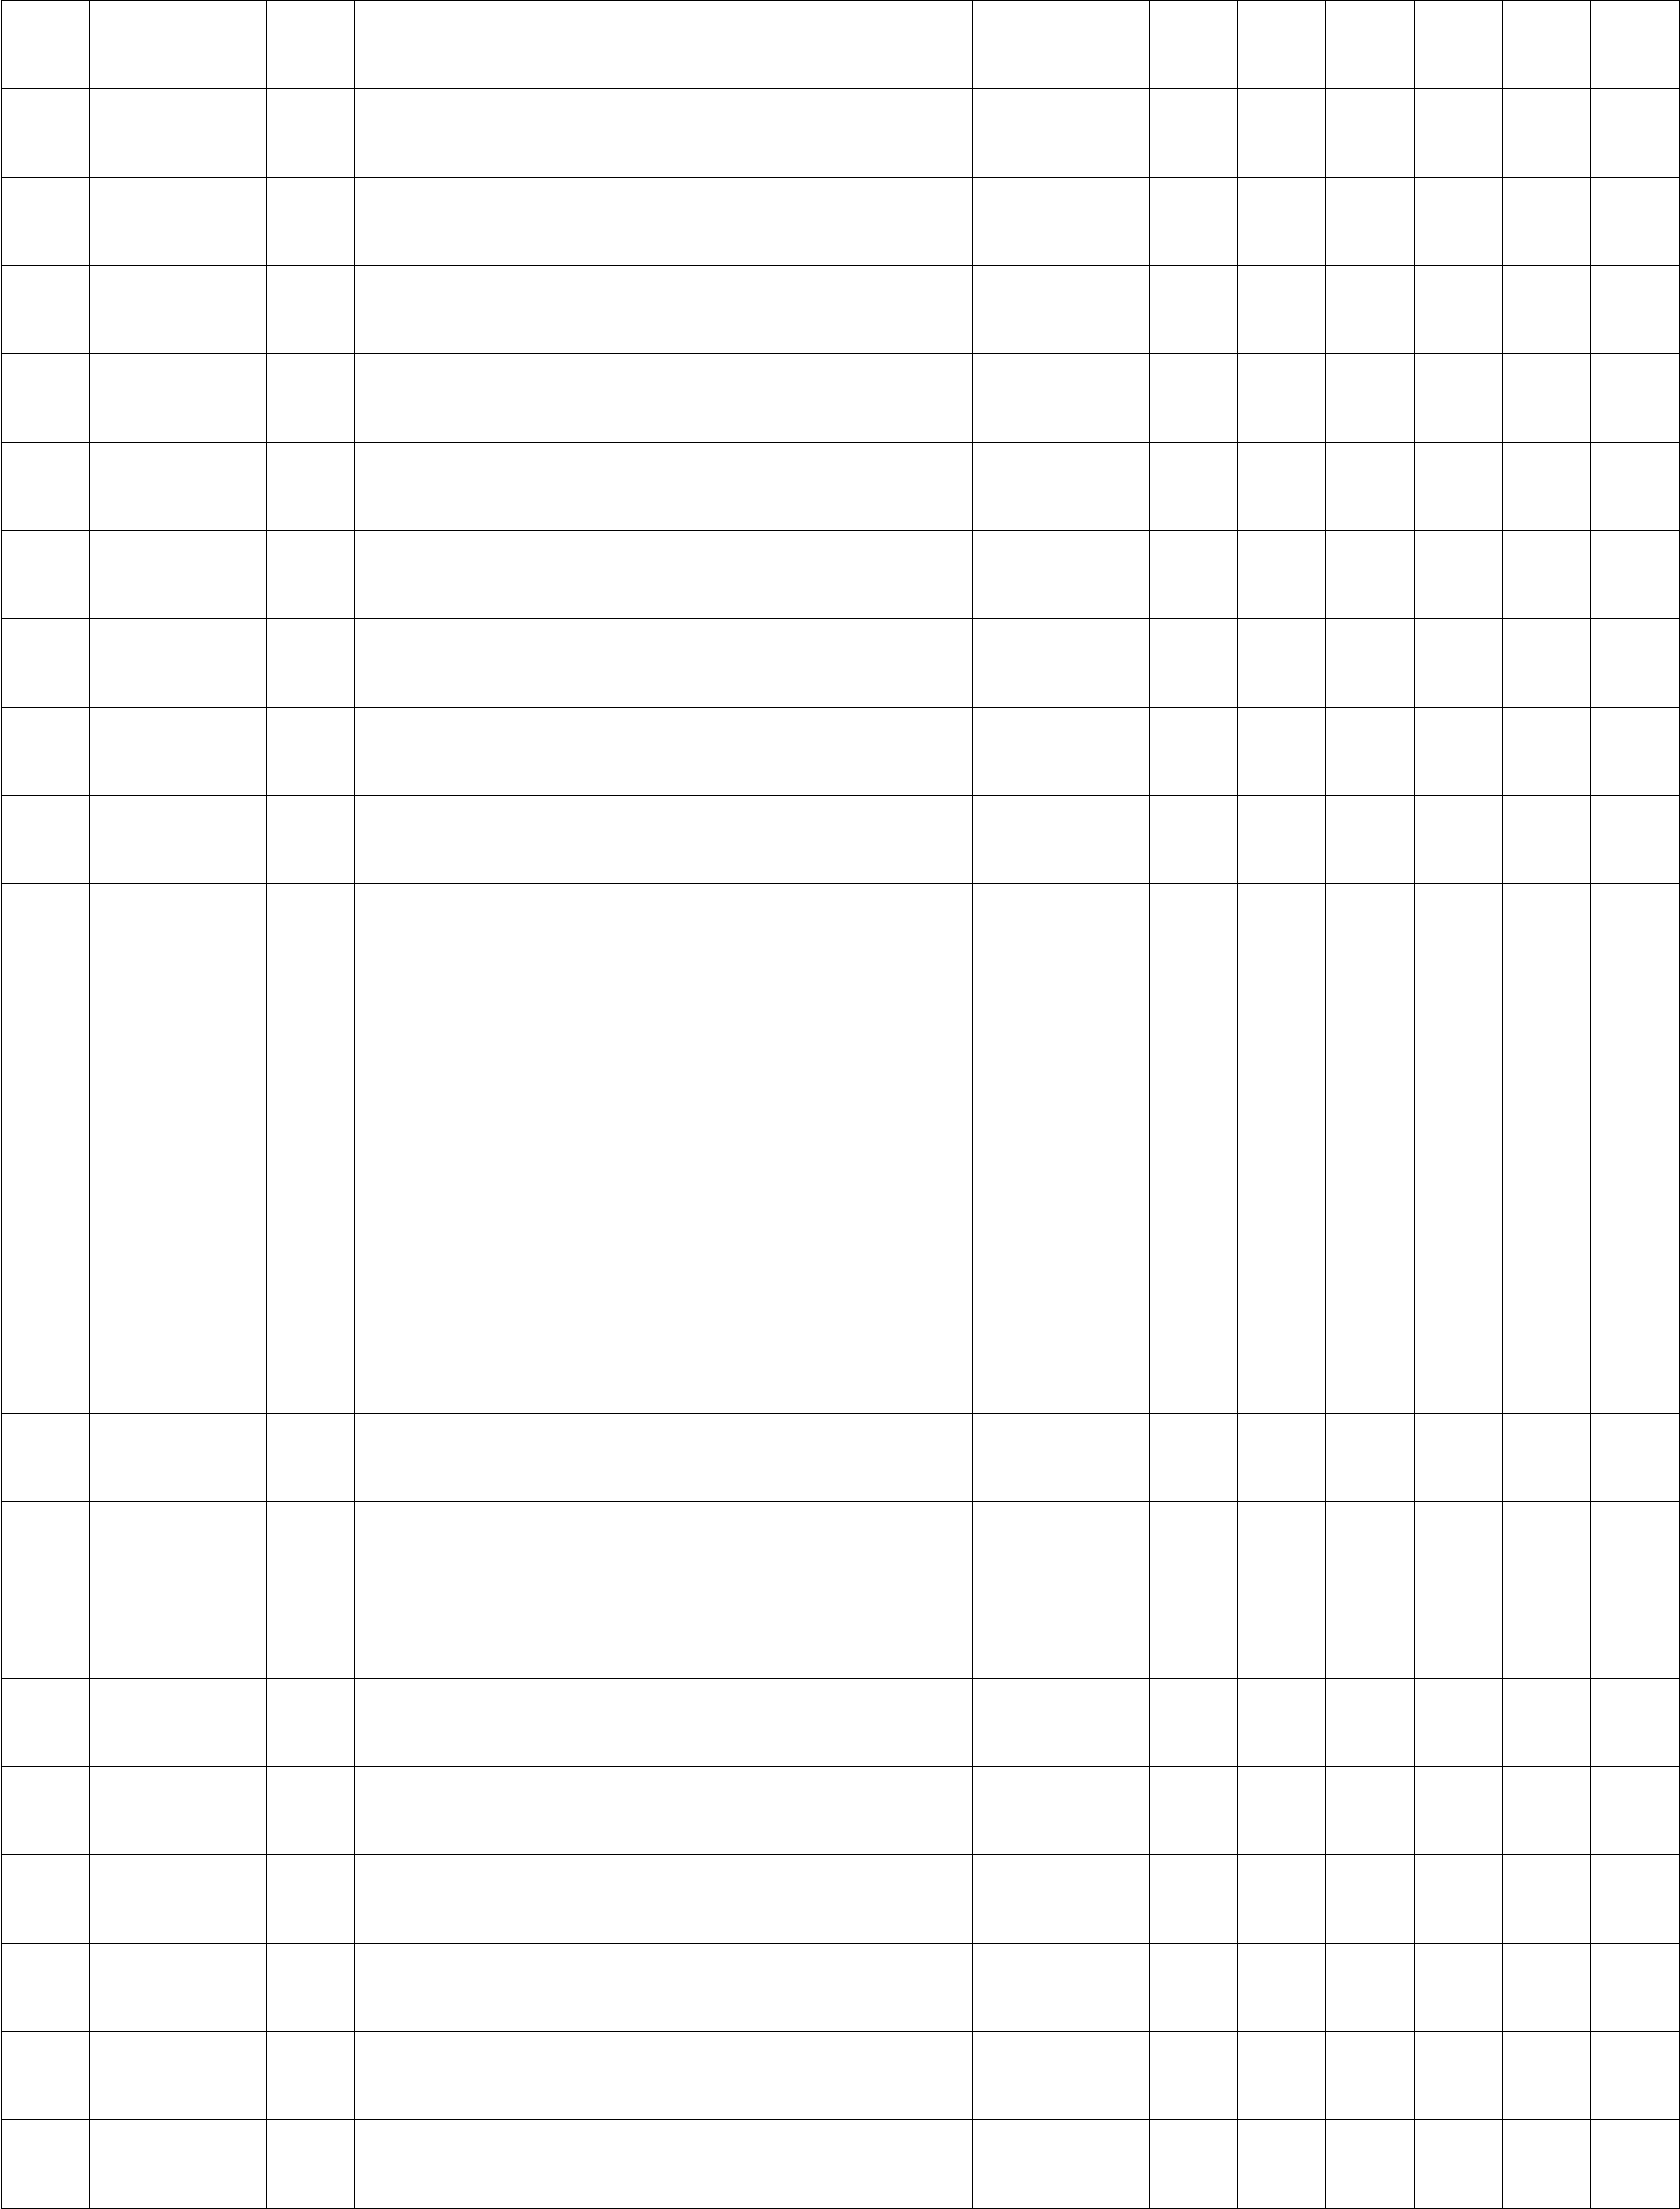 sample centimeter graph paper template free download